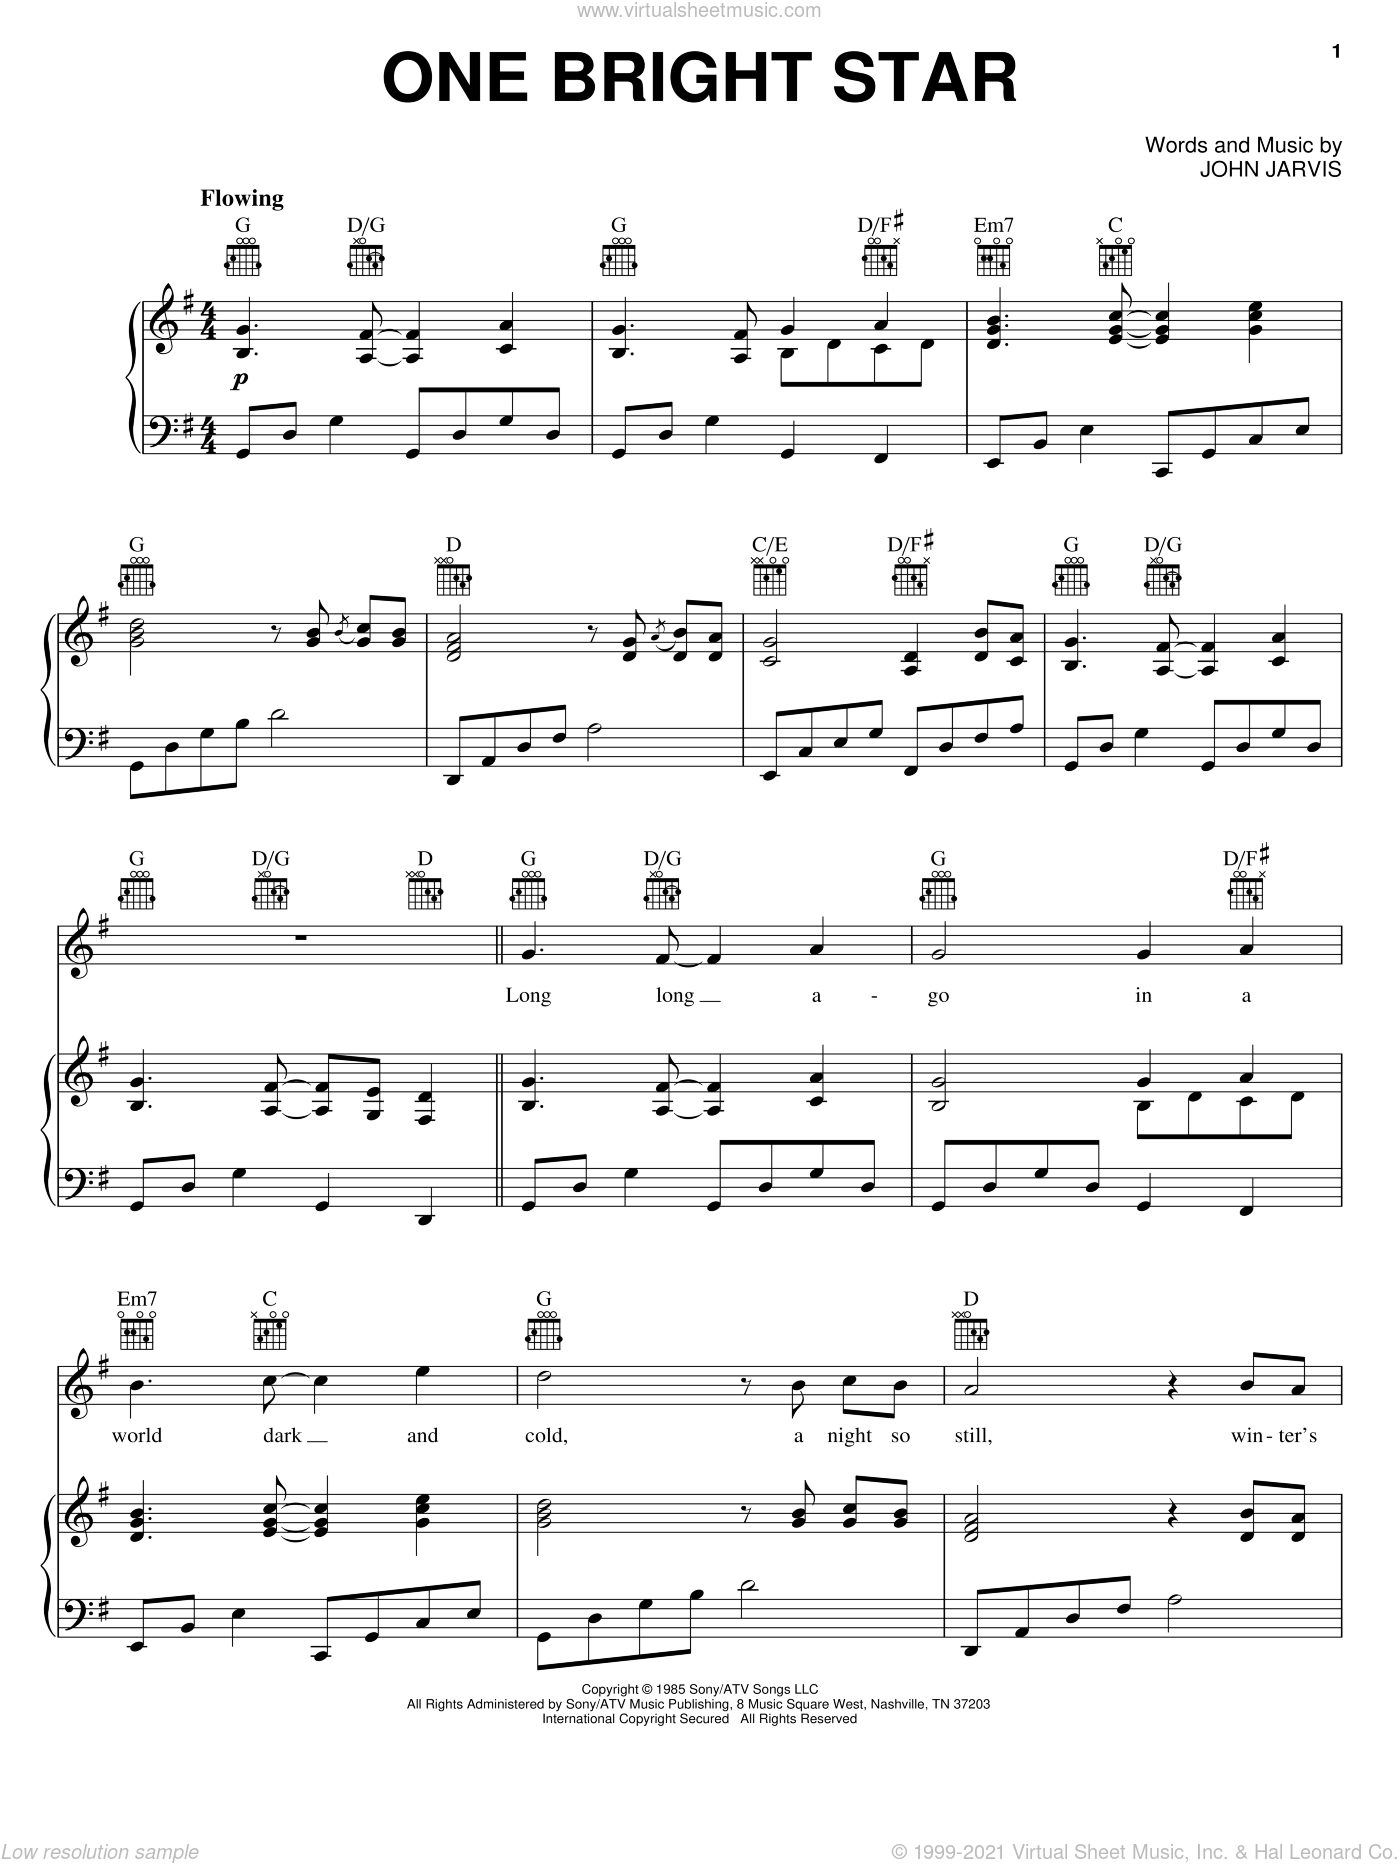 One Bright Star sheet music for voice, piano or guitar by John Jarvis, intermediate skill level